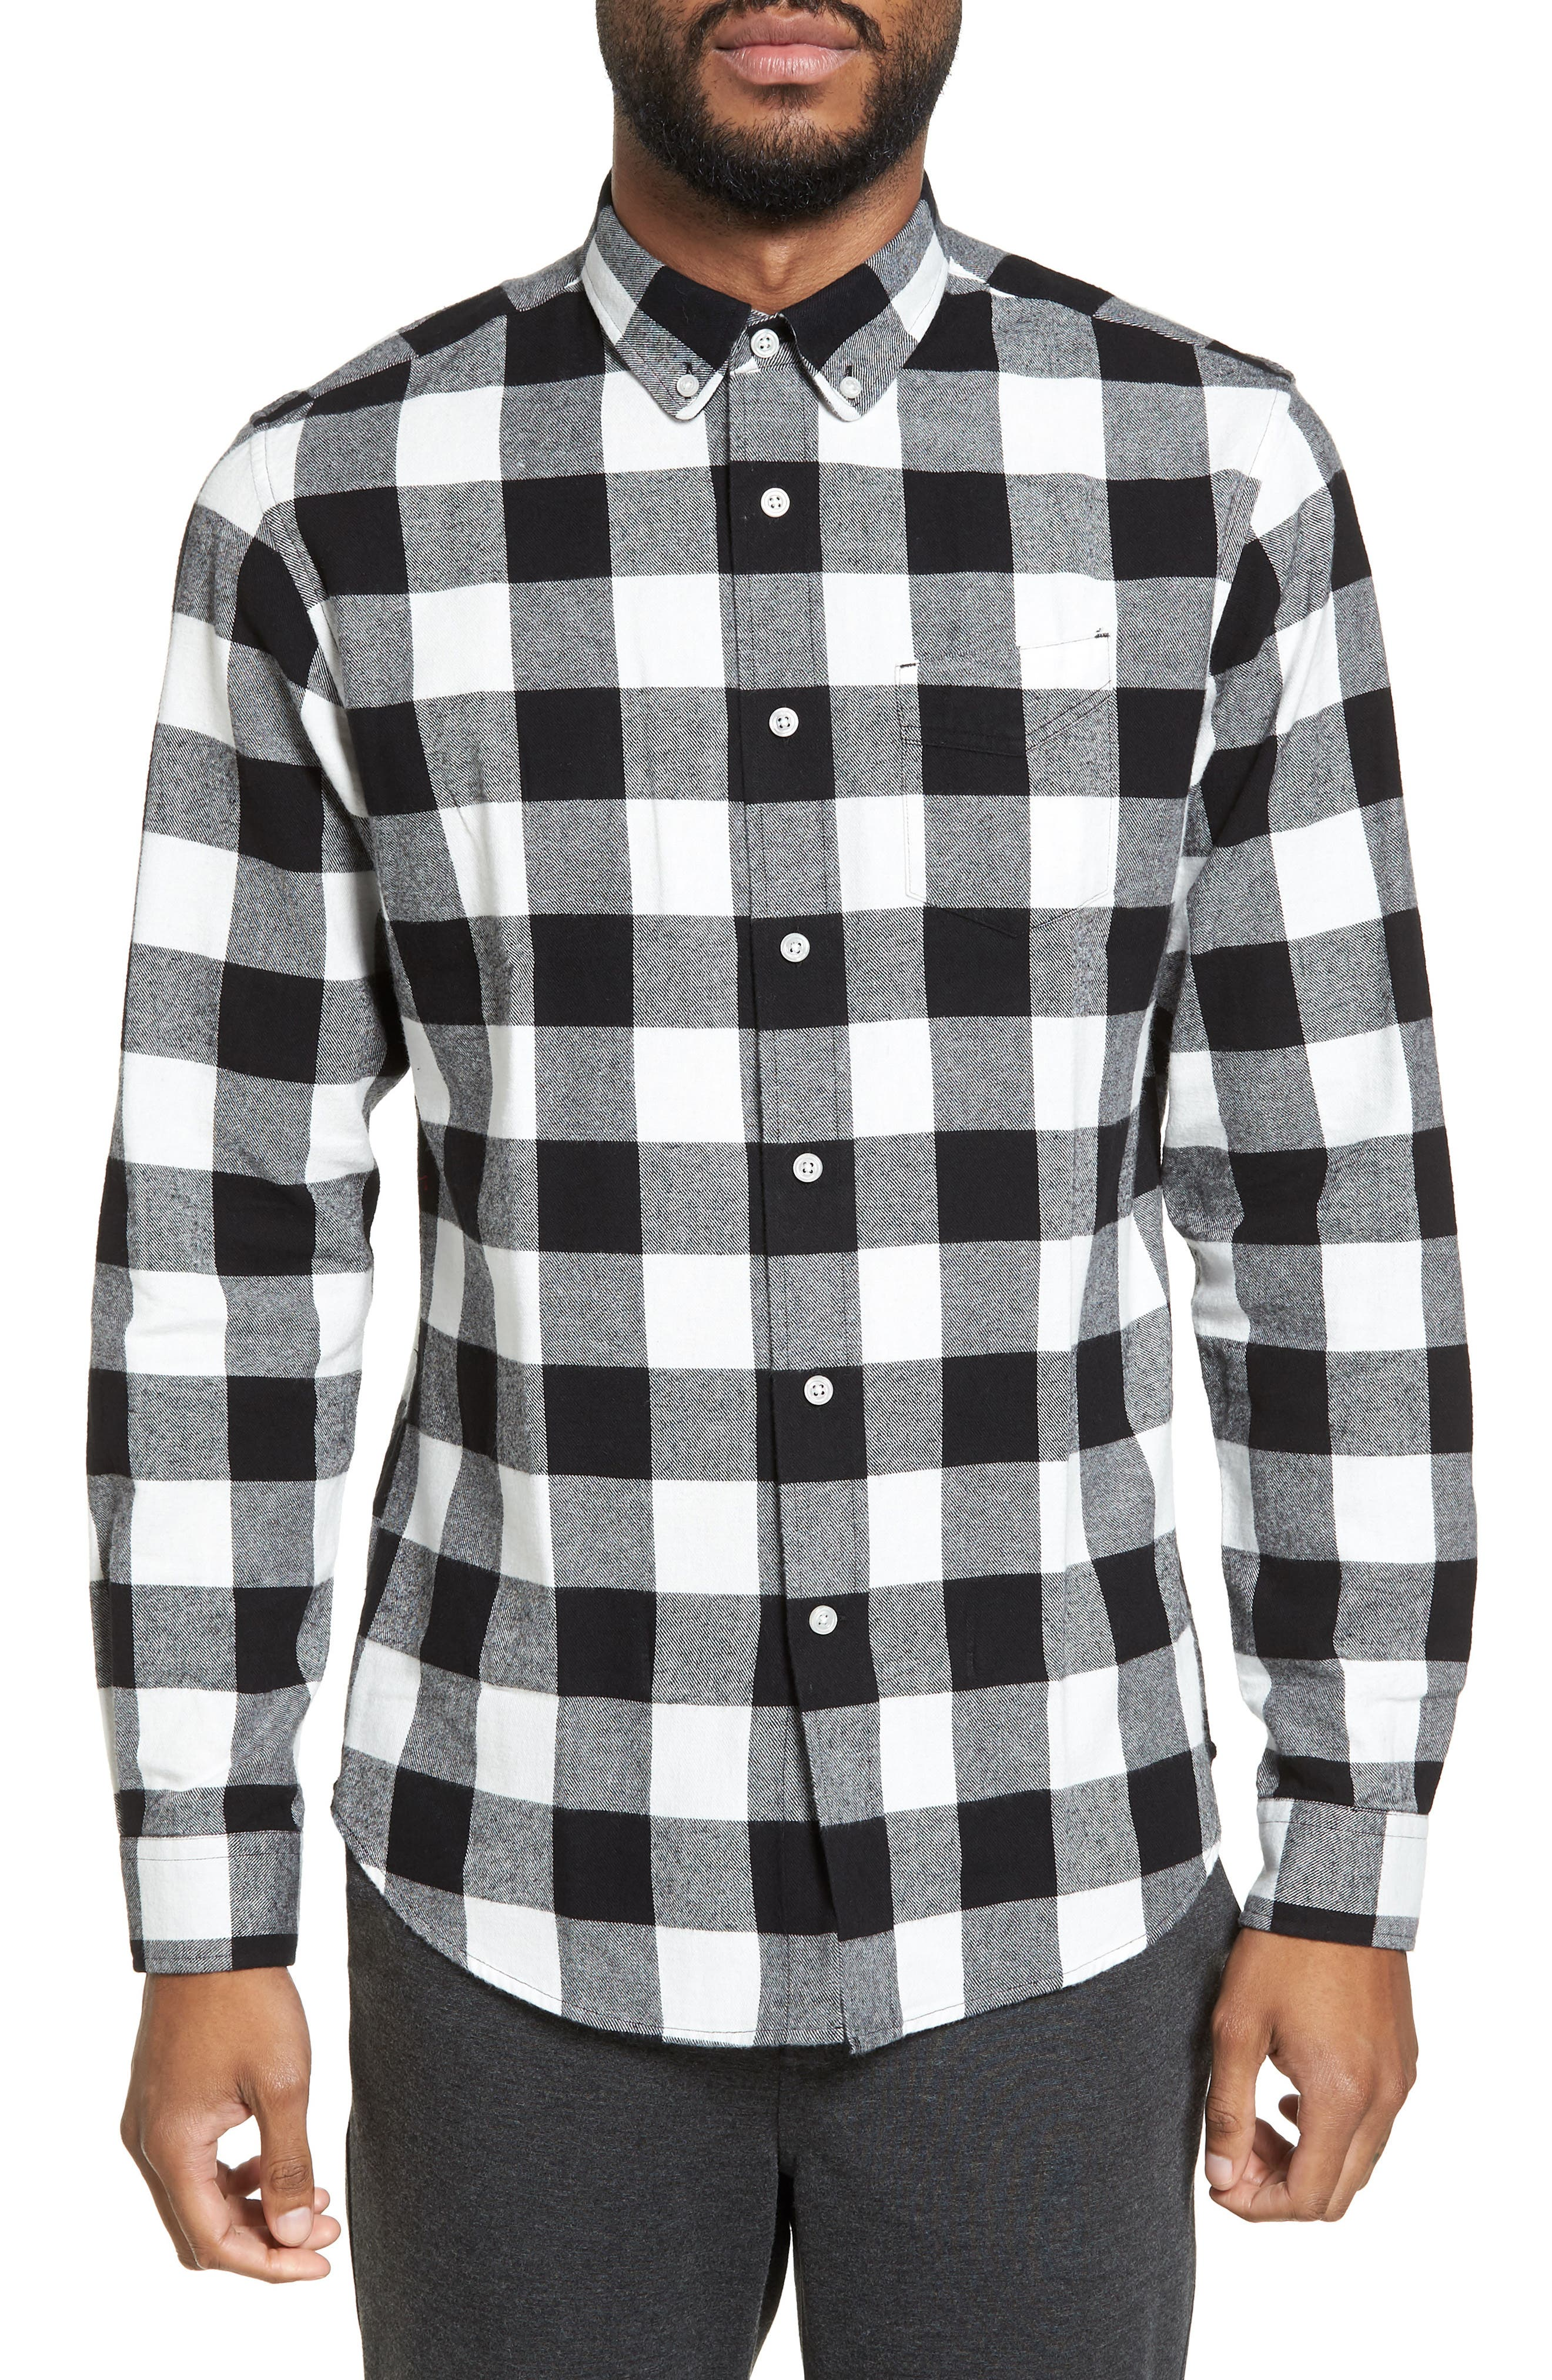 Trim Fit Buffalo Plaid Flannel Sport Shirt,                         Main,                         color, Black/ White Buffalo Plaid